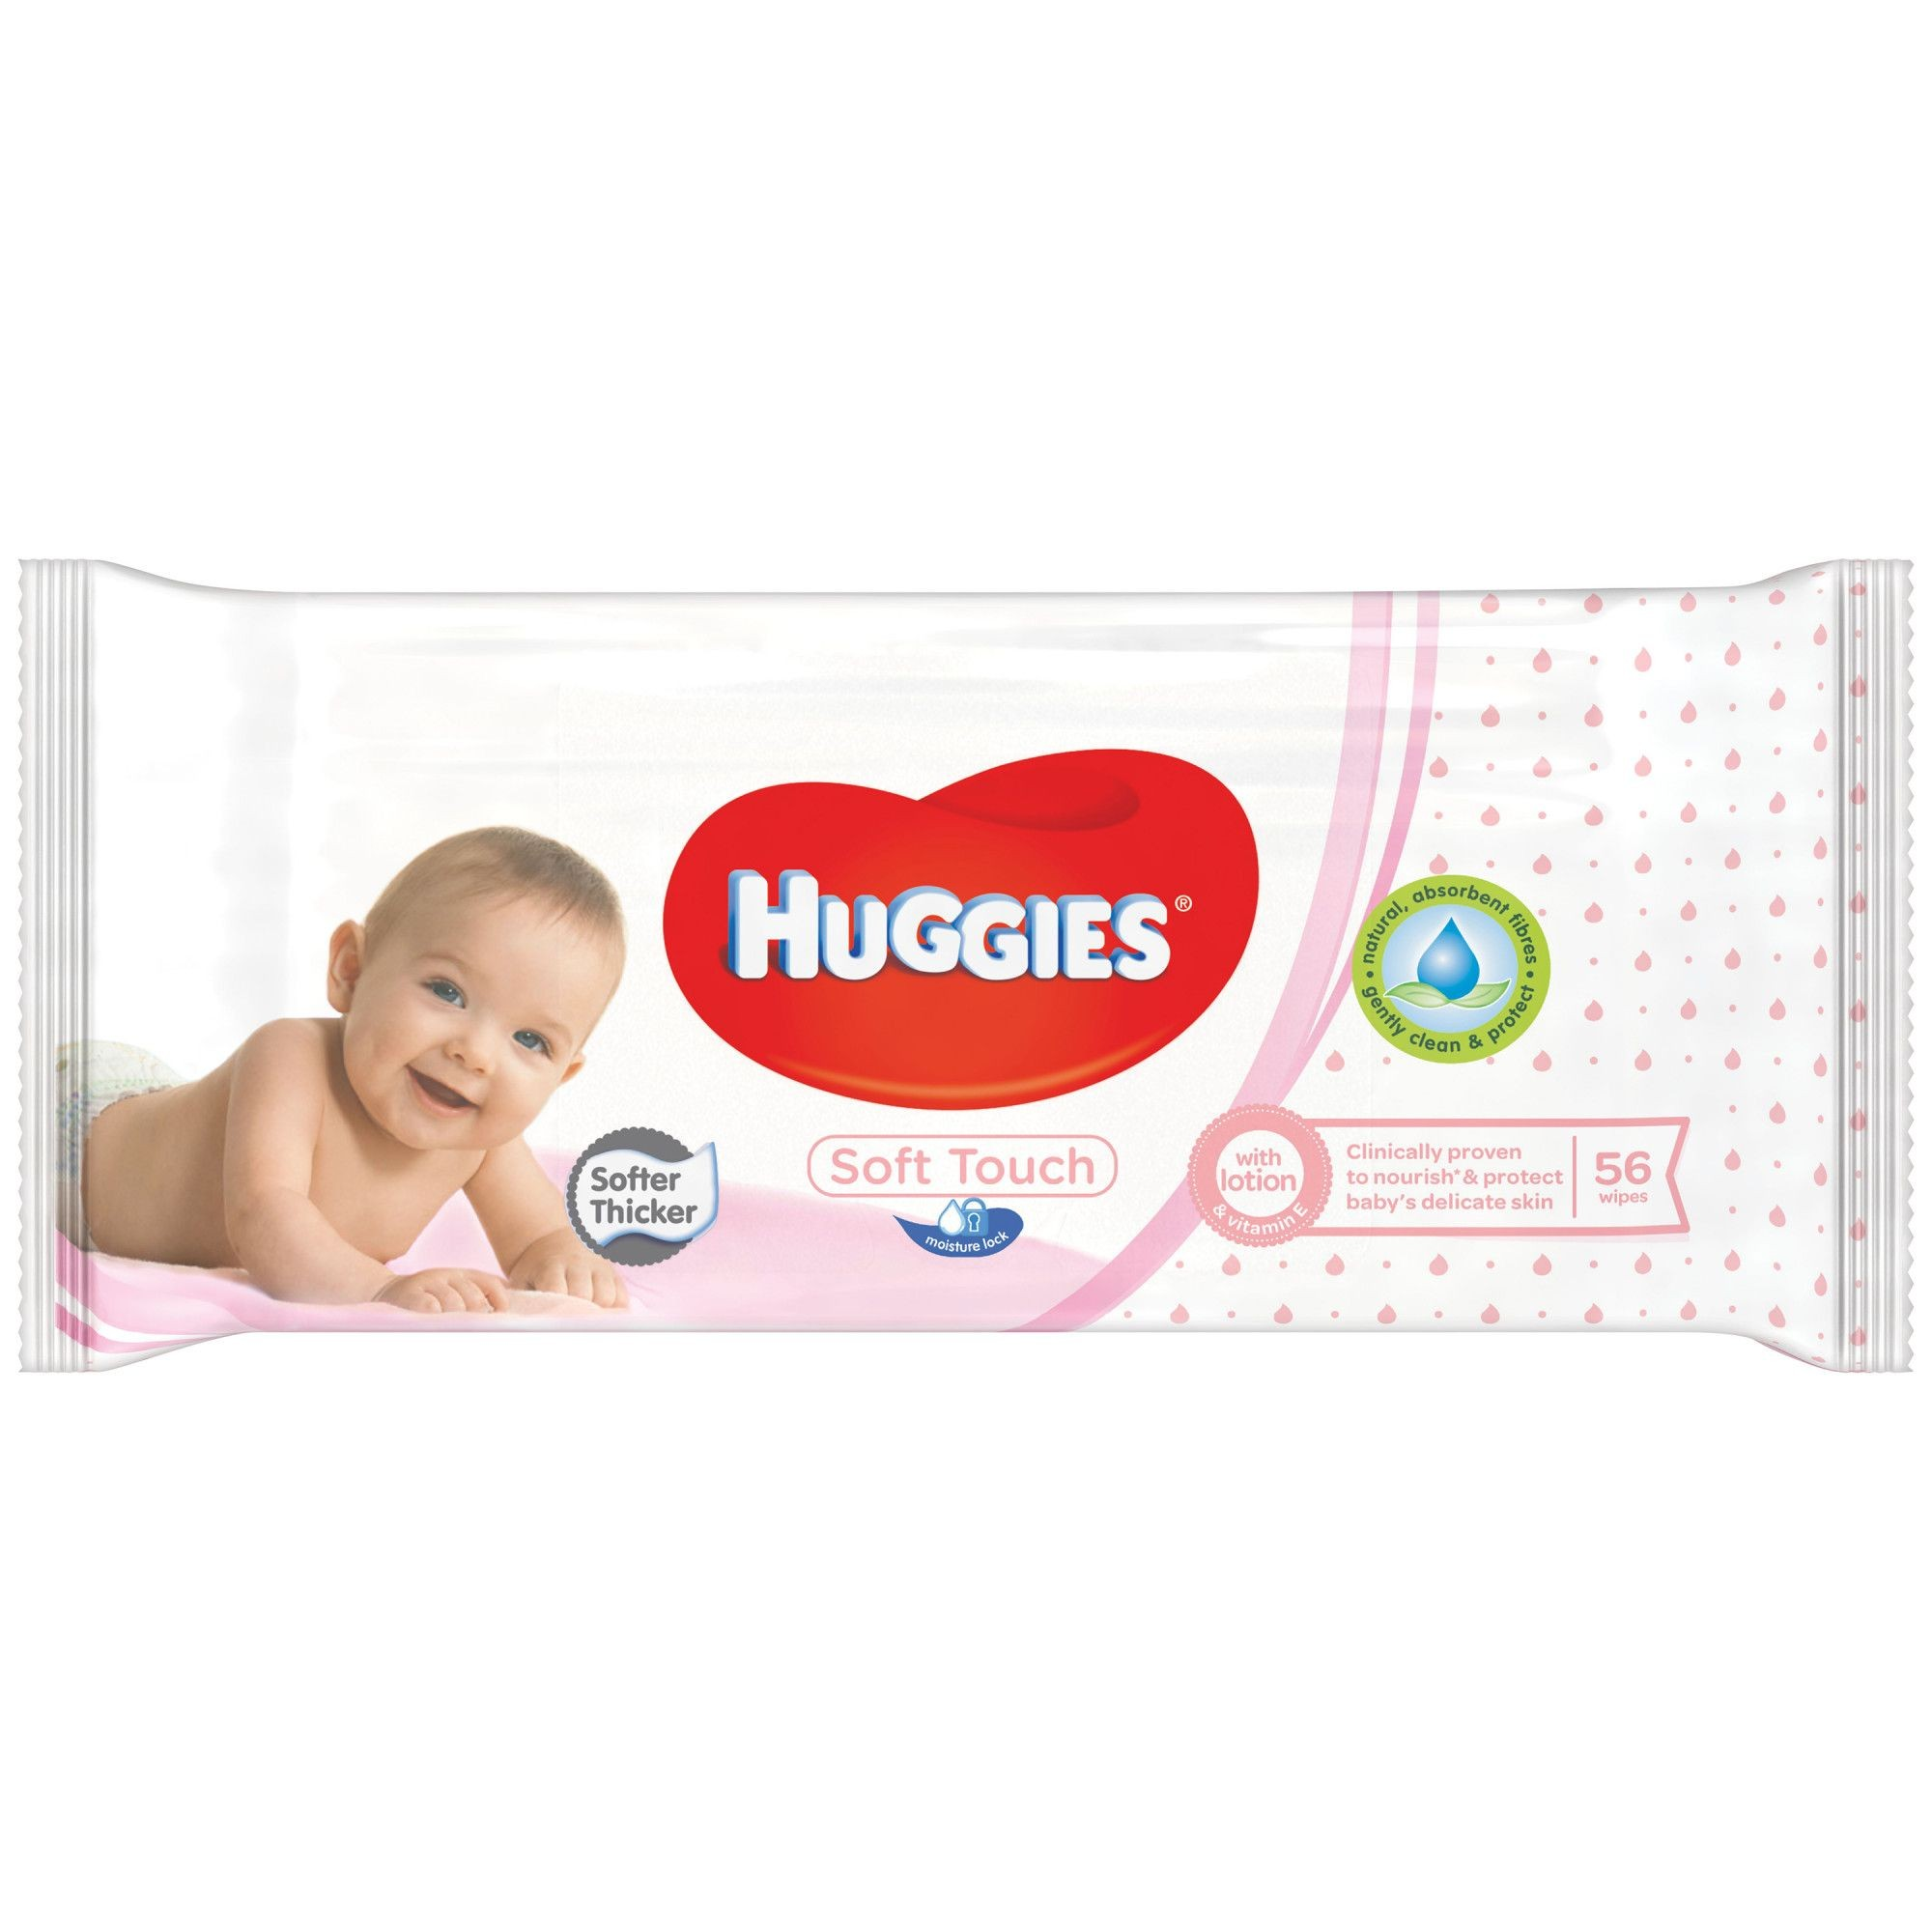 HUGGIES SOFT TOUCH BABY 56 WIPES